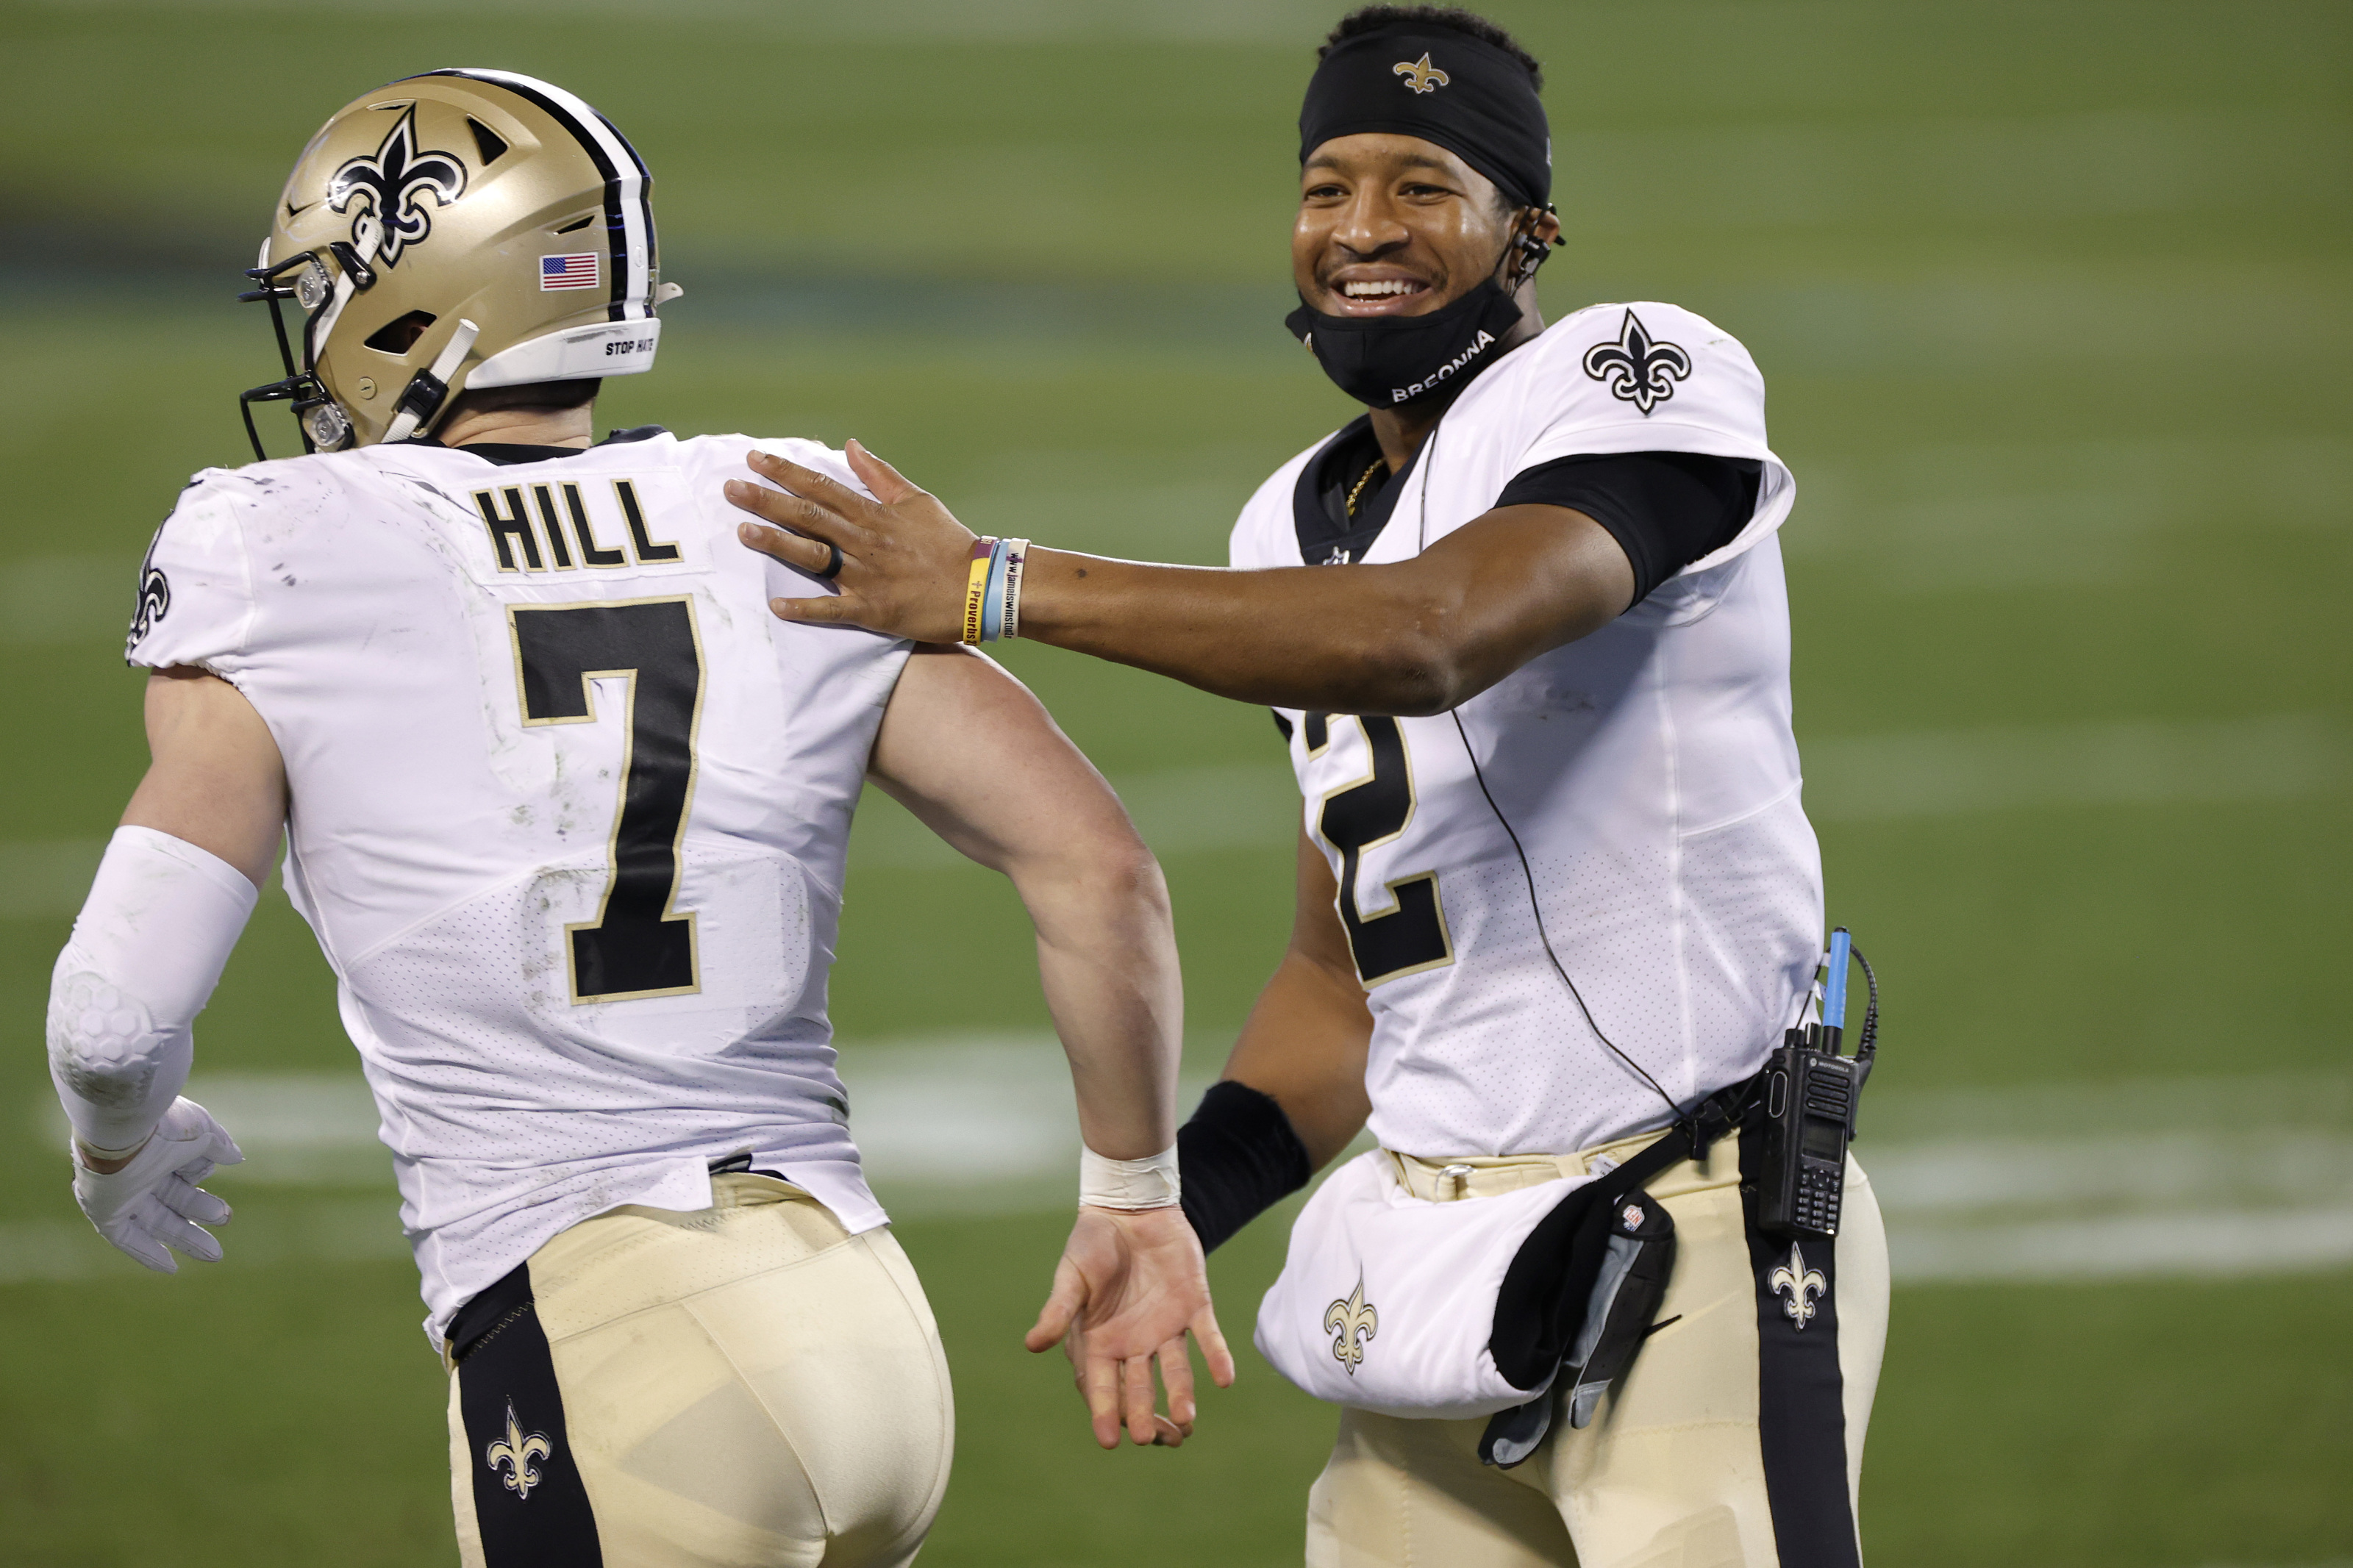 Winston and Hill are vigorously training in Saints QB battle